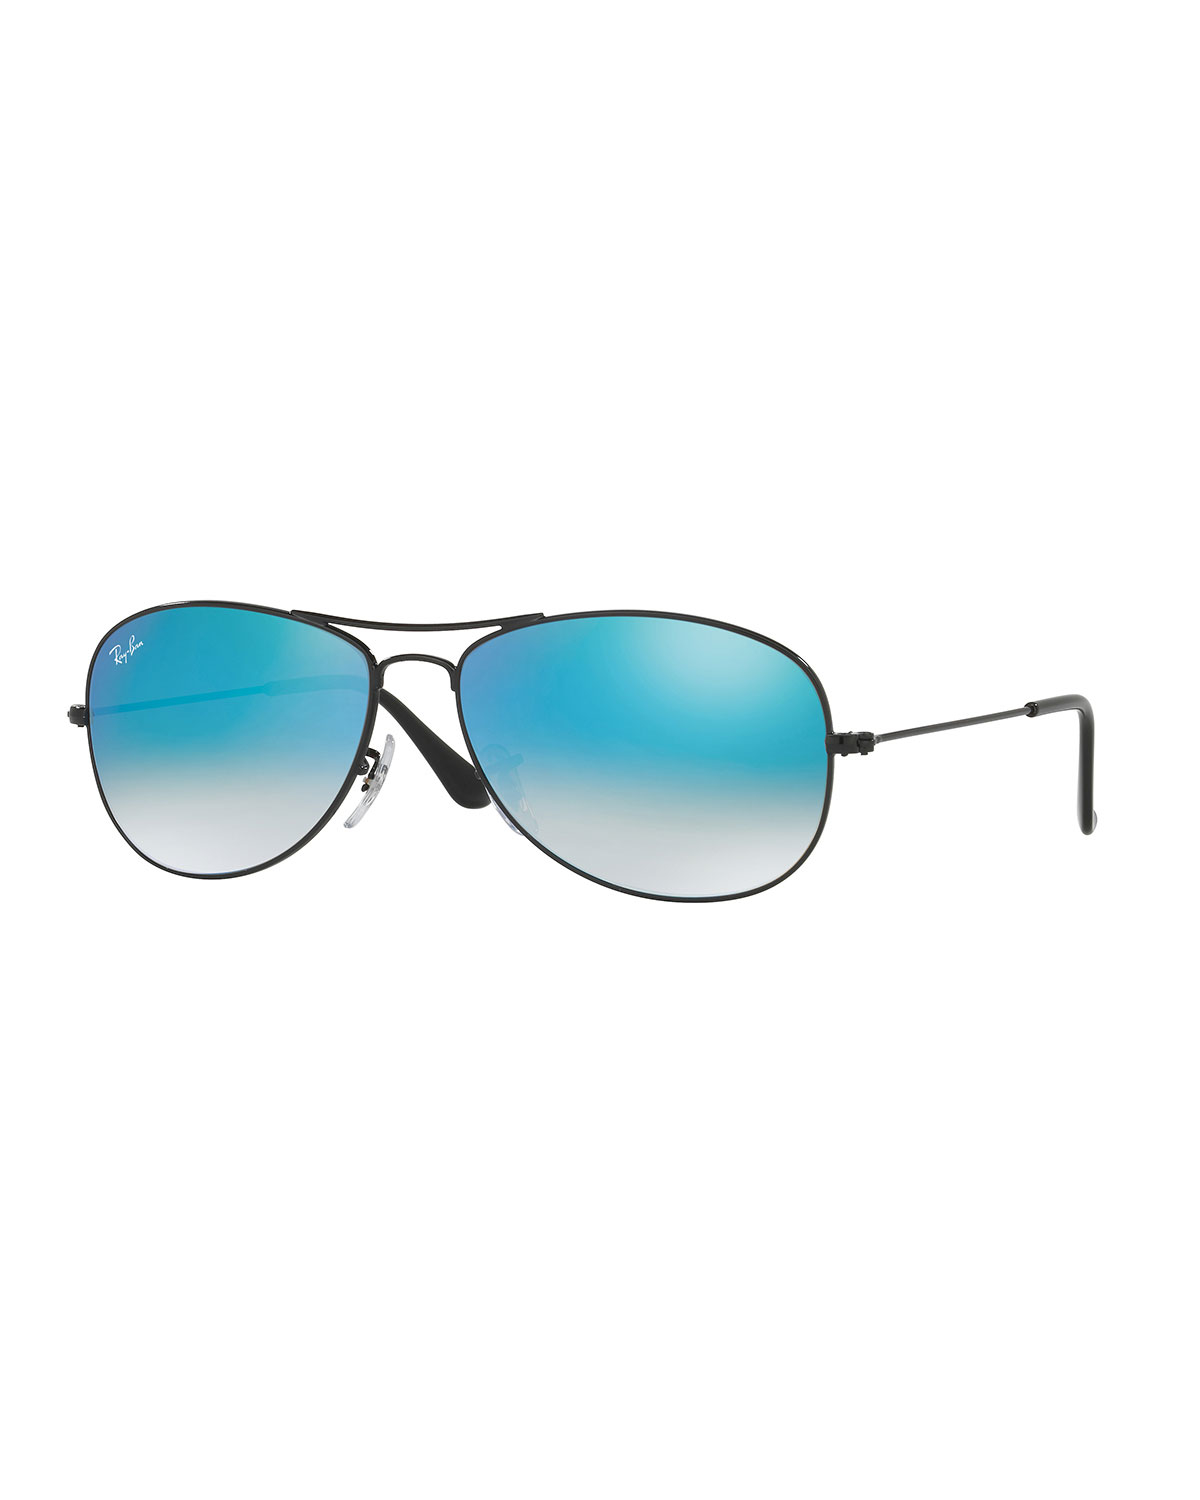 Small Frame Ray Ban Aviators